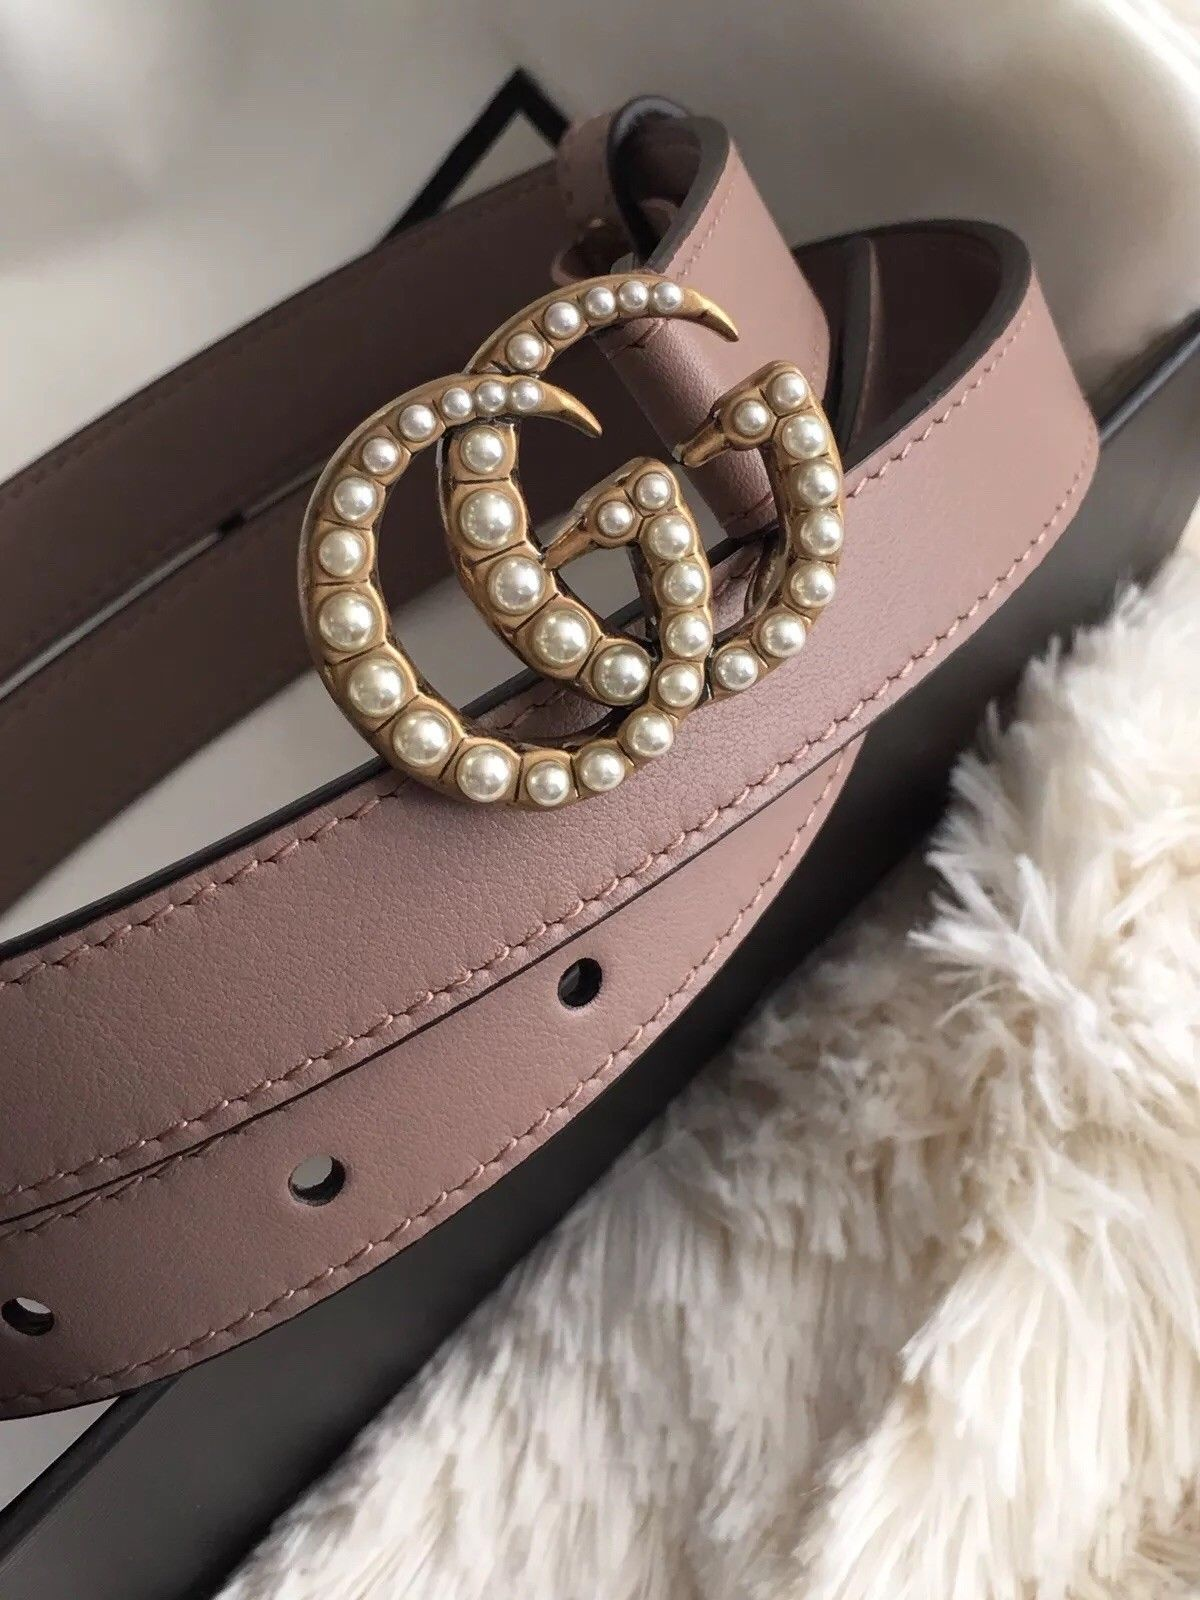 0177612387a NIB Gucci GG Pearl Marmont Light Pink Rose GG Belt Leather Size 85 80 SOLD  OUT